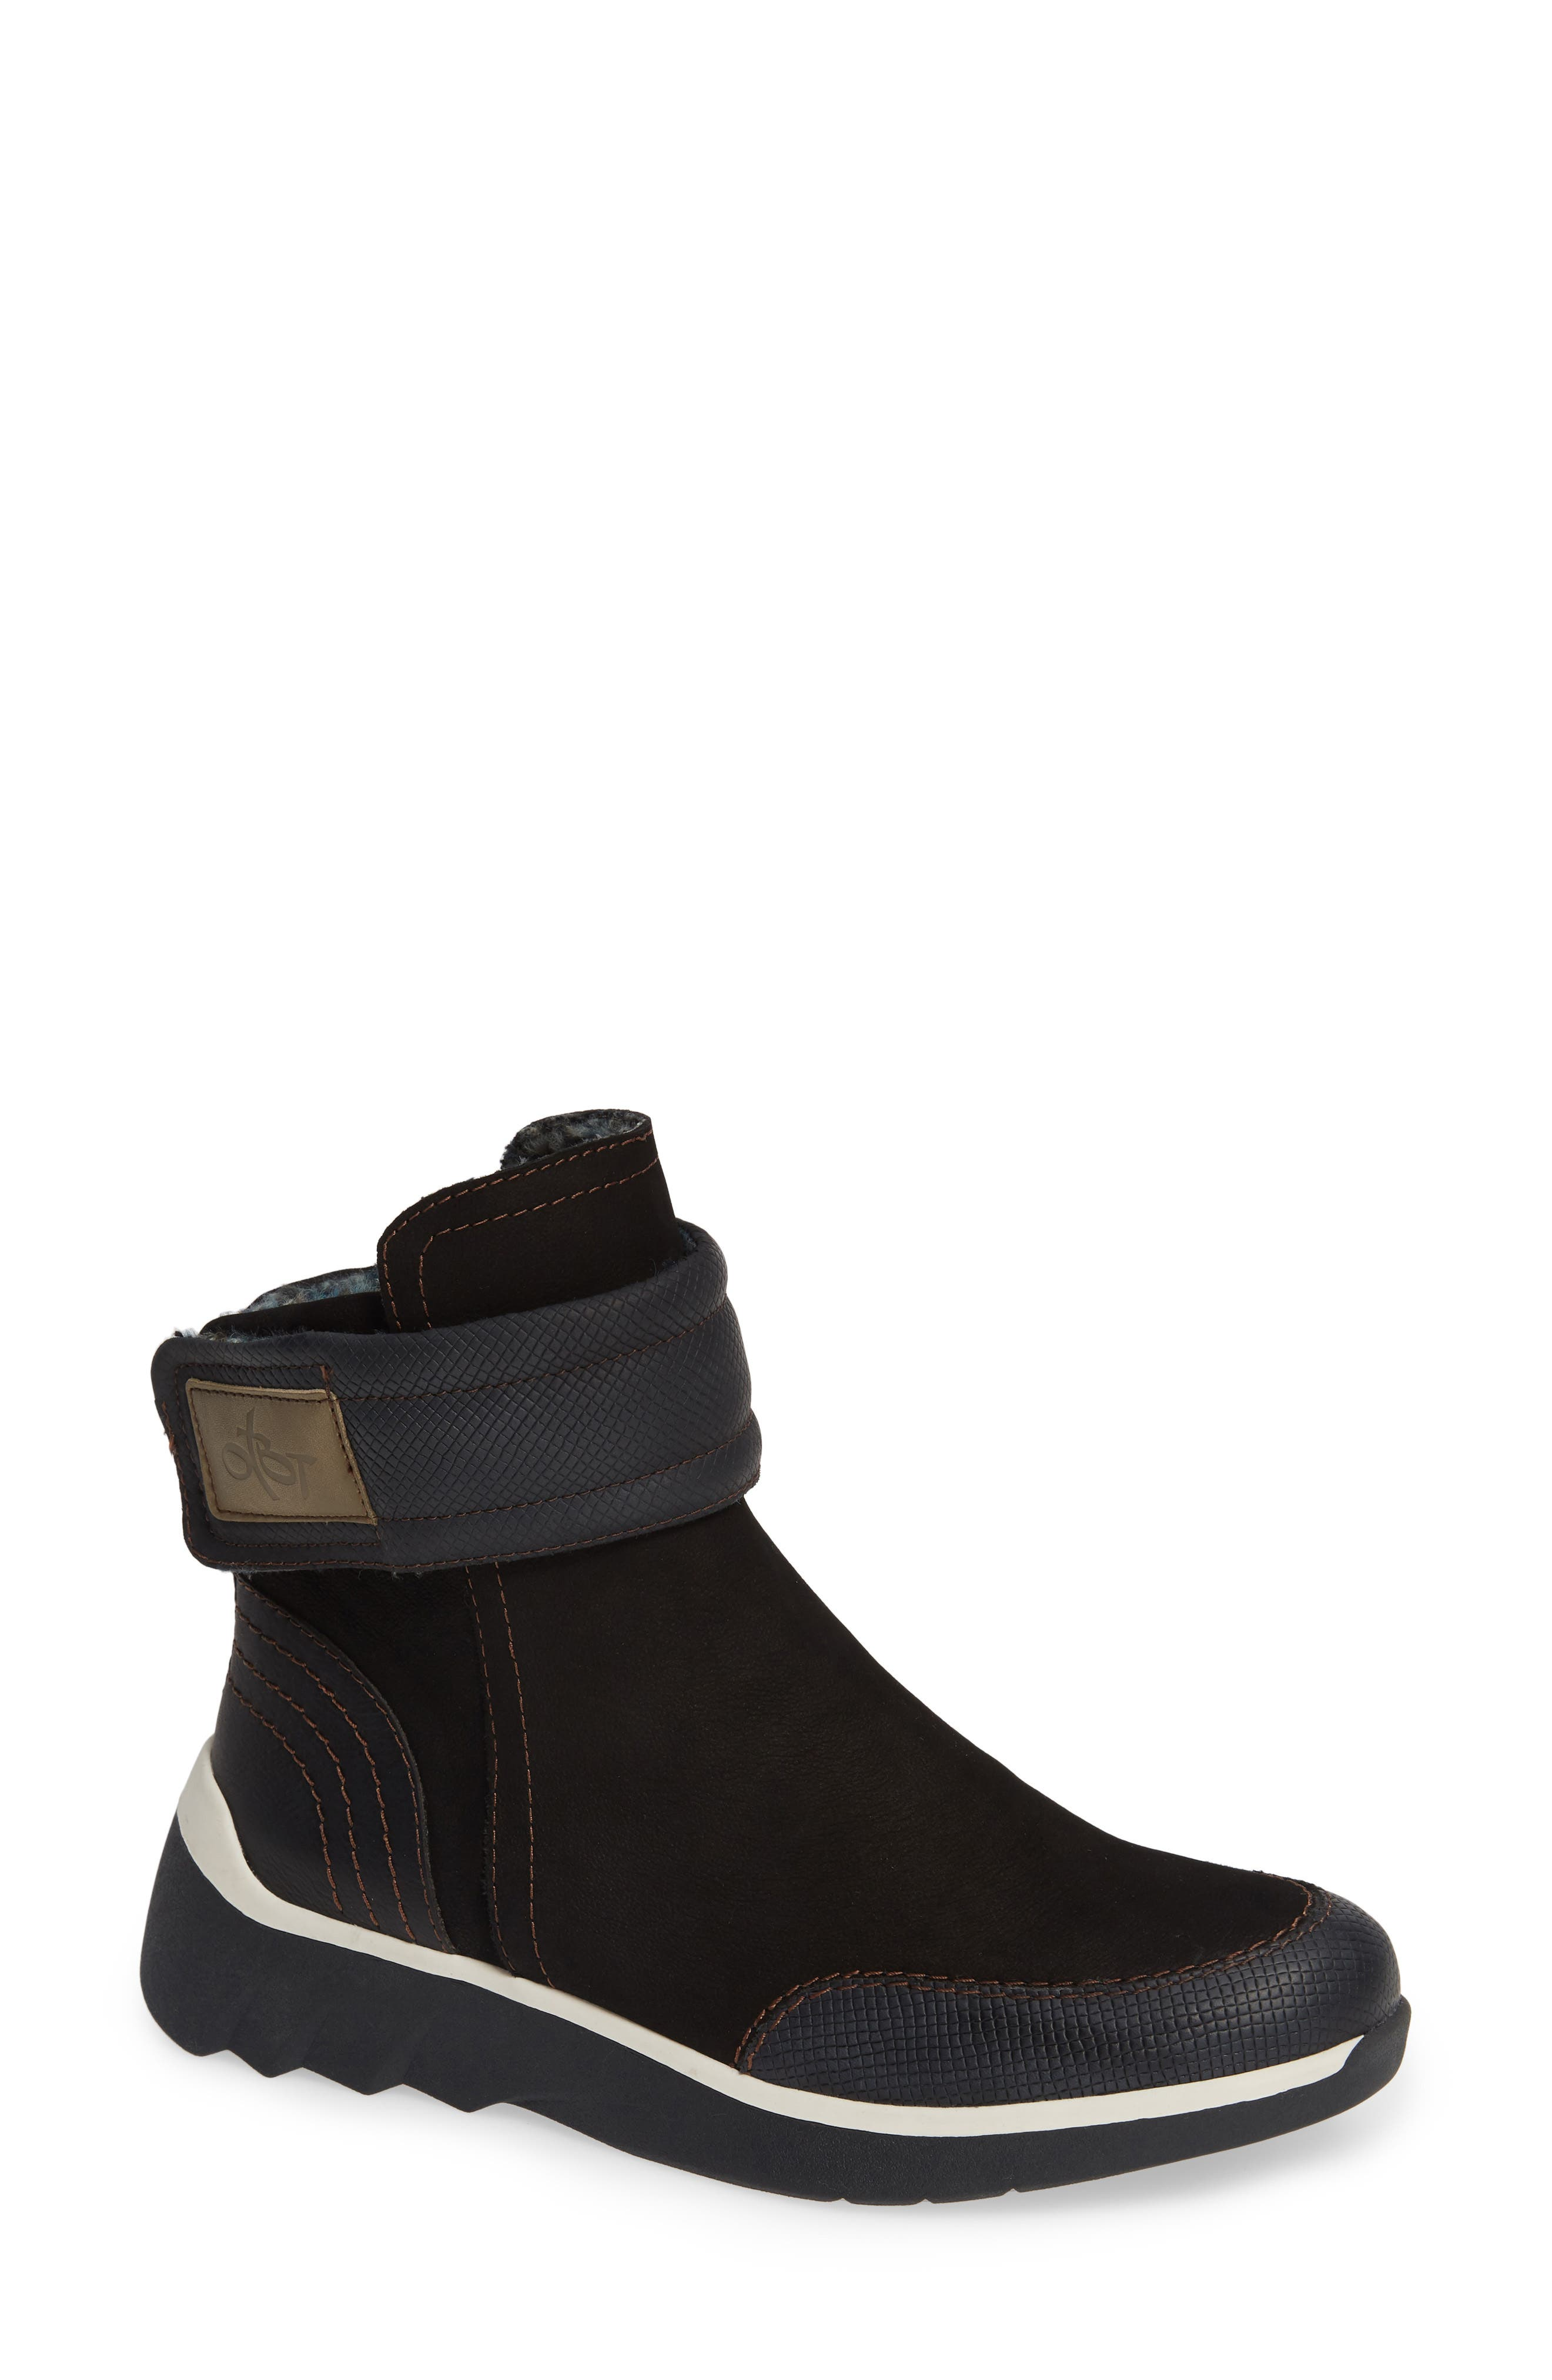 Outing Bootie, Main, color, BLACK LEATHER